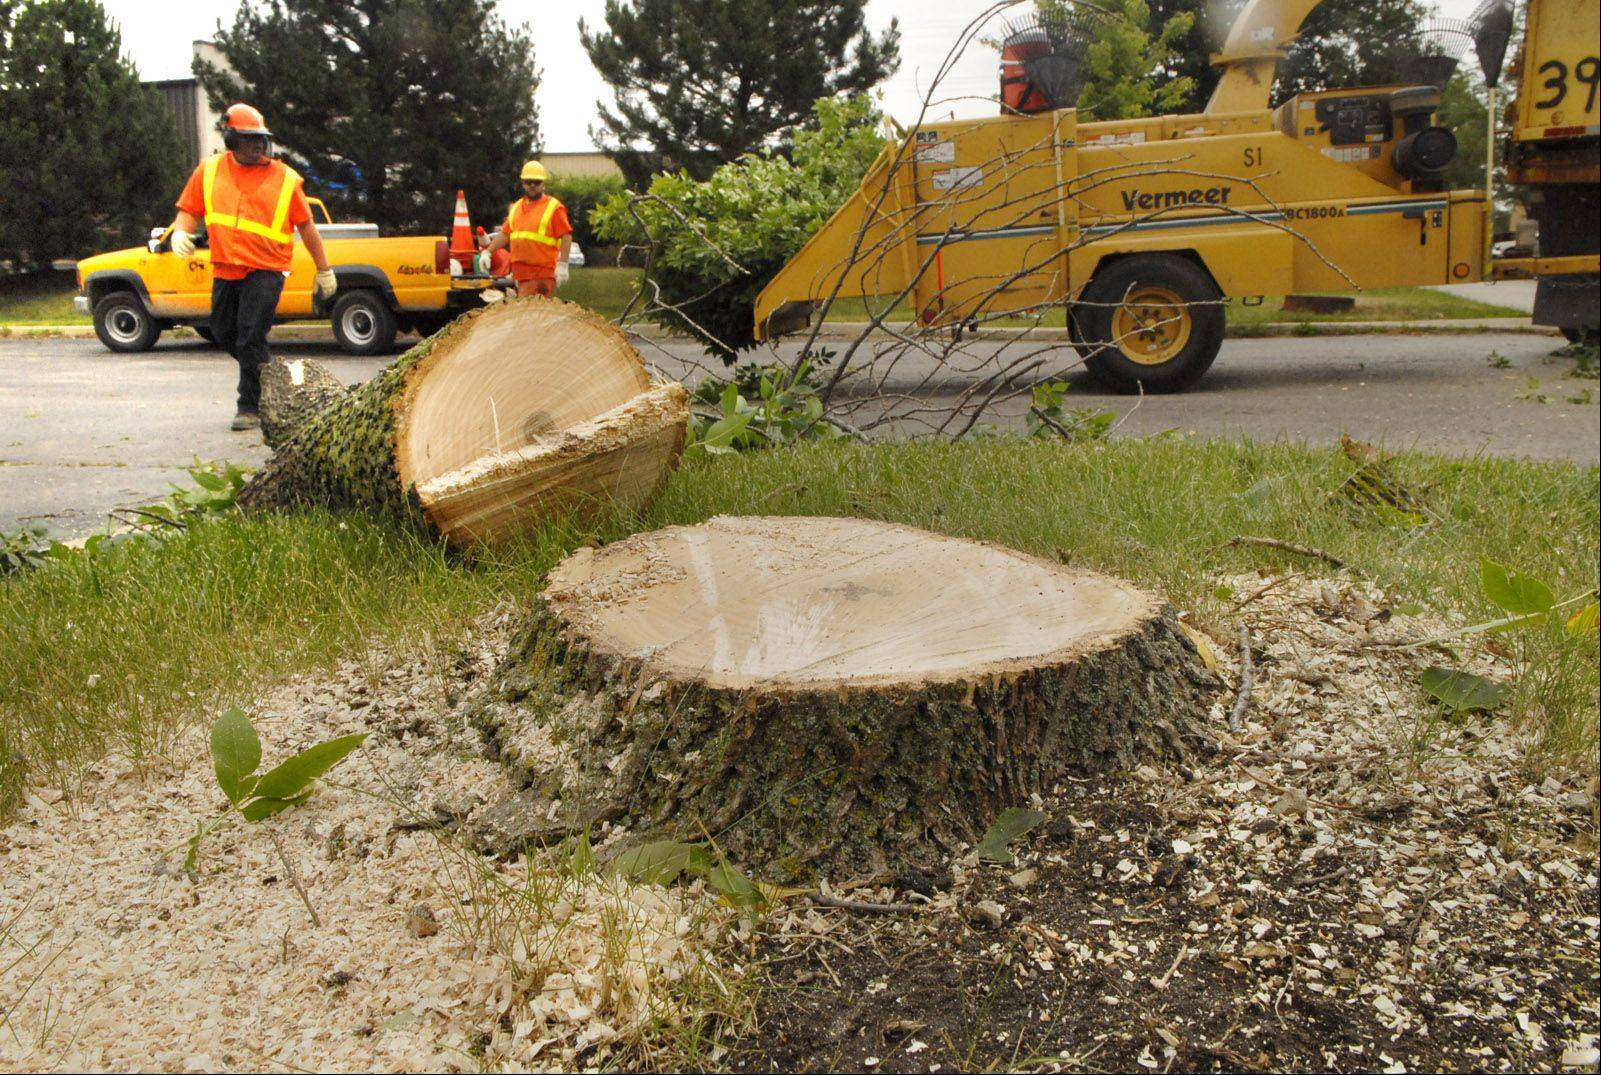 Ash trees in Buffalo Grove are dying at a rate faster than expected, officials say, causing the village to cut down hundreds more trees than the 1,000 targeted for removal this year. Officials blame the increase on last year�s dry weather.